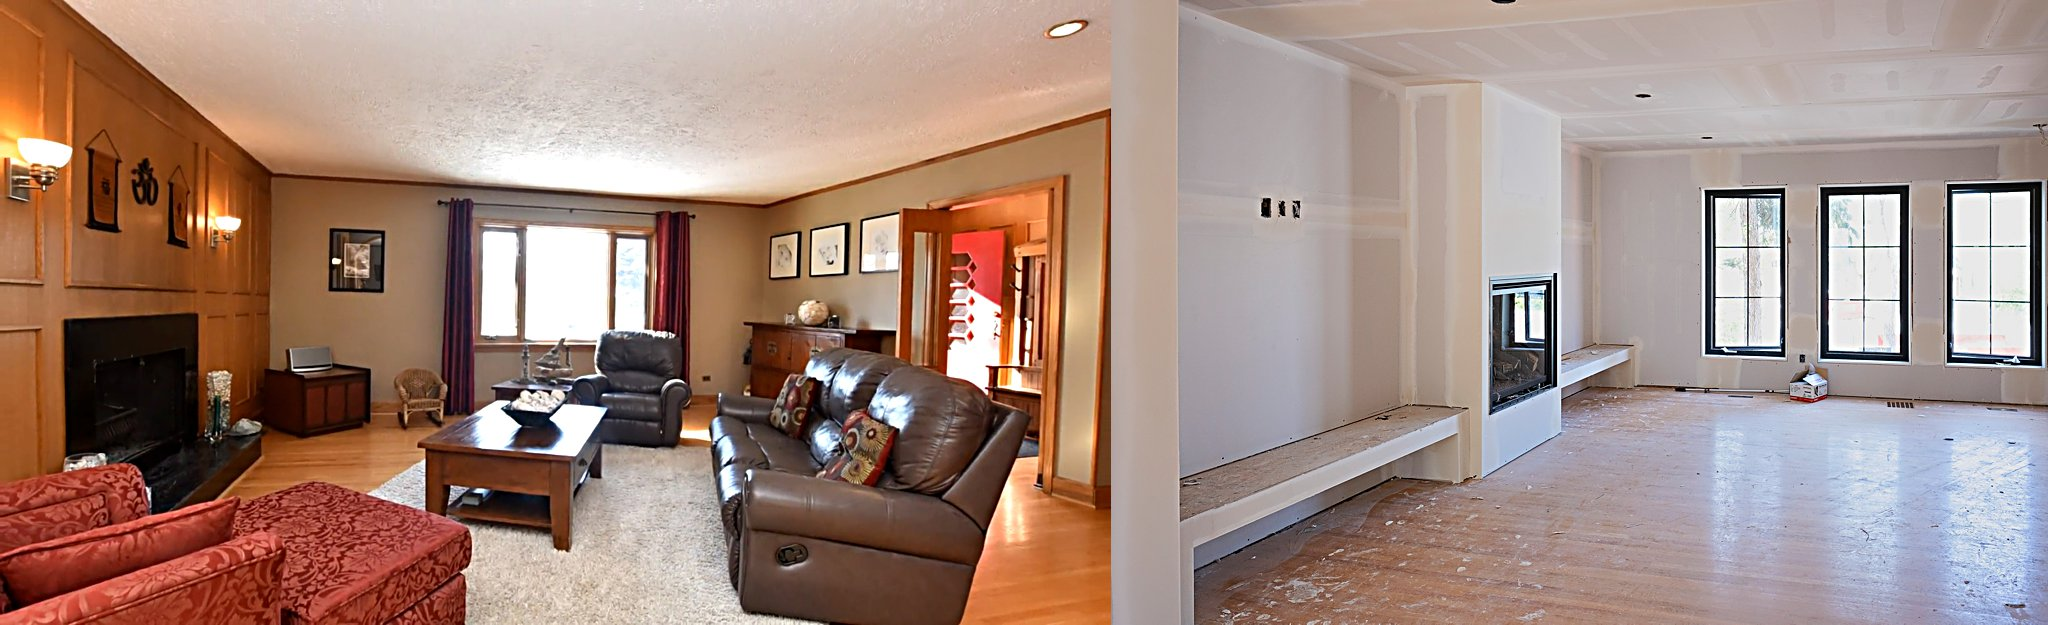 Before and After // Living room